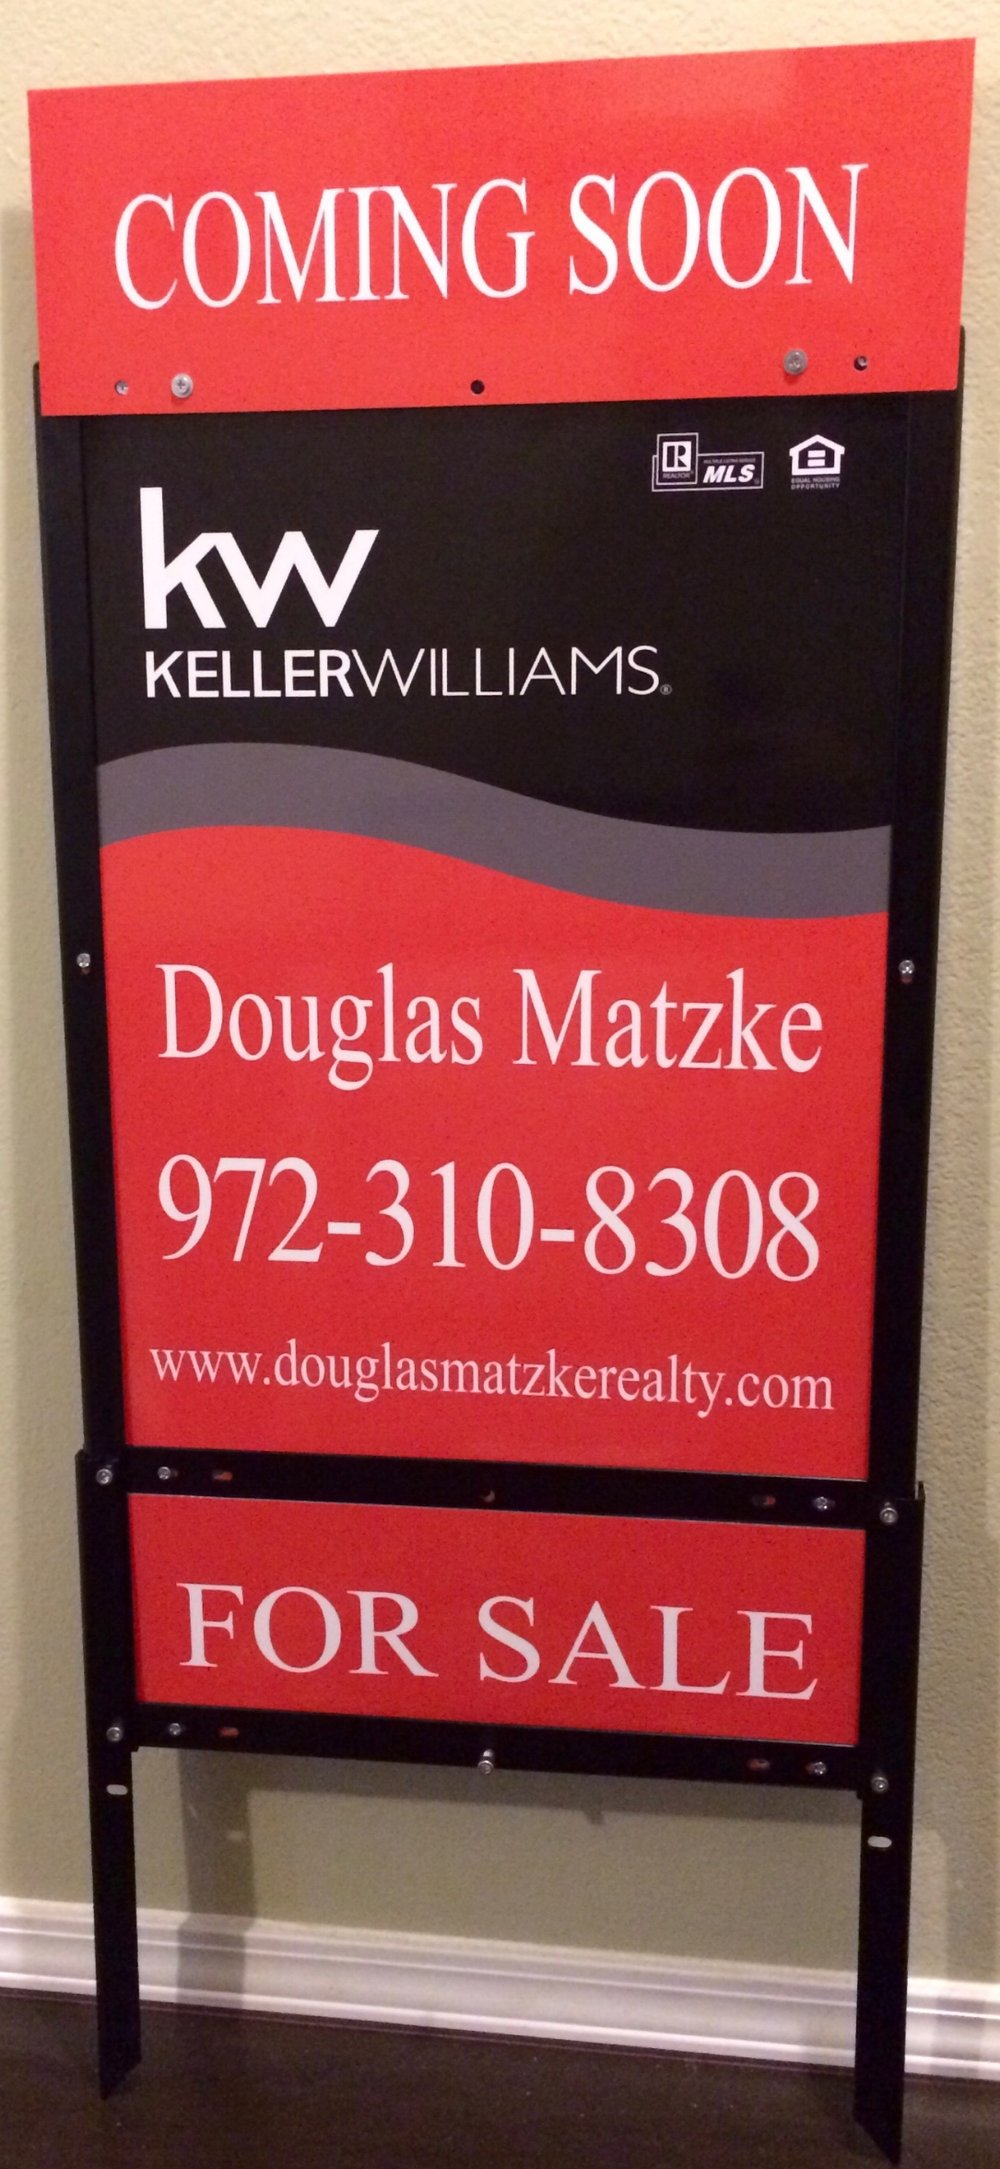 Keller Williams Realty 24%22 x 18%22 Panel & 6%22 x 18%22 Custom Aluminum Rider (TOP & BOTOM) & EZ Frame.jpeg